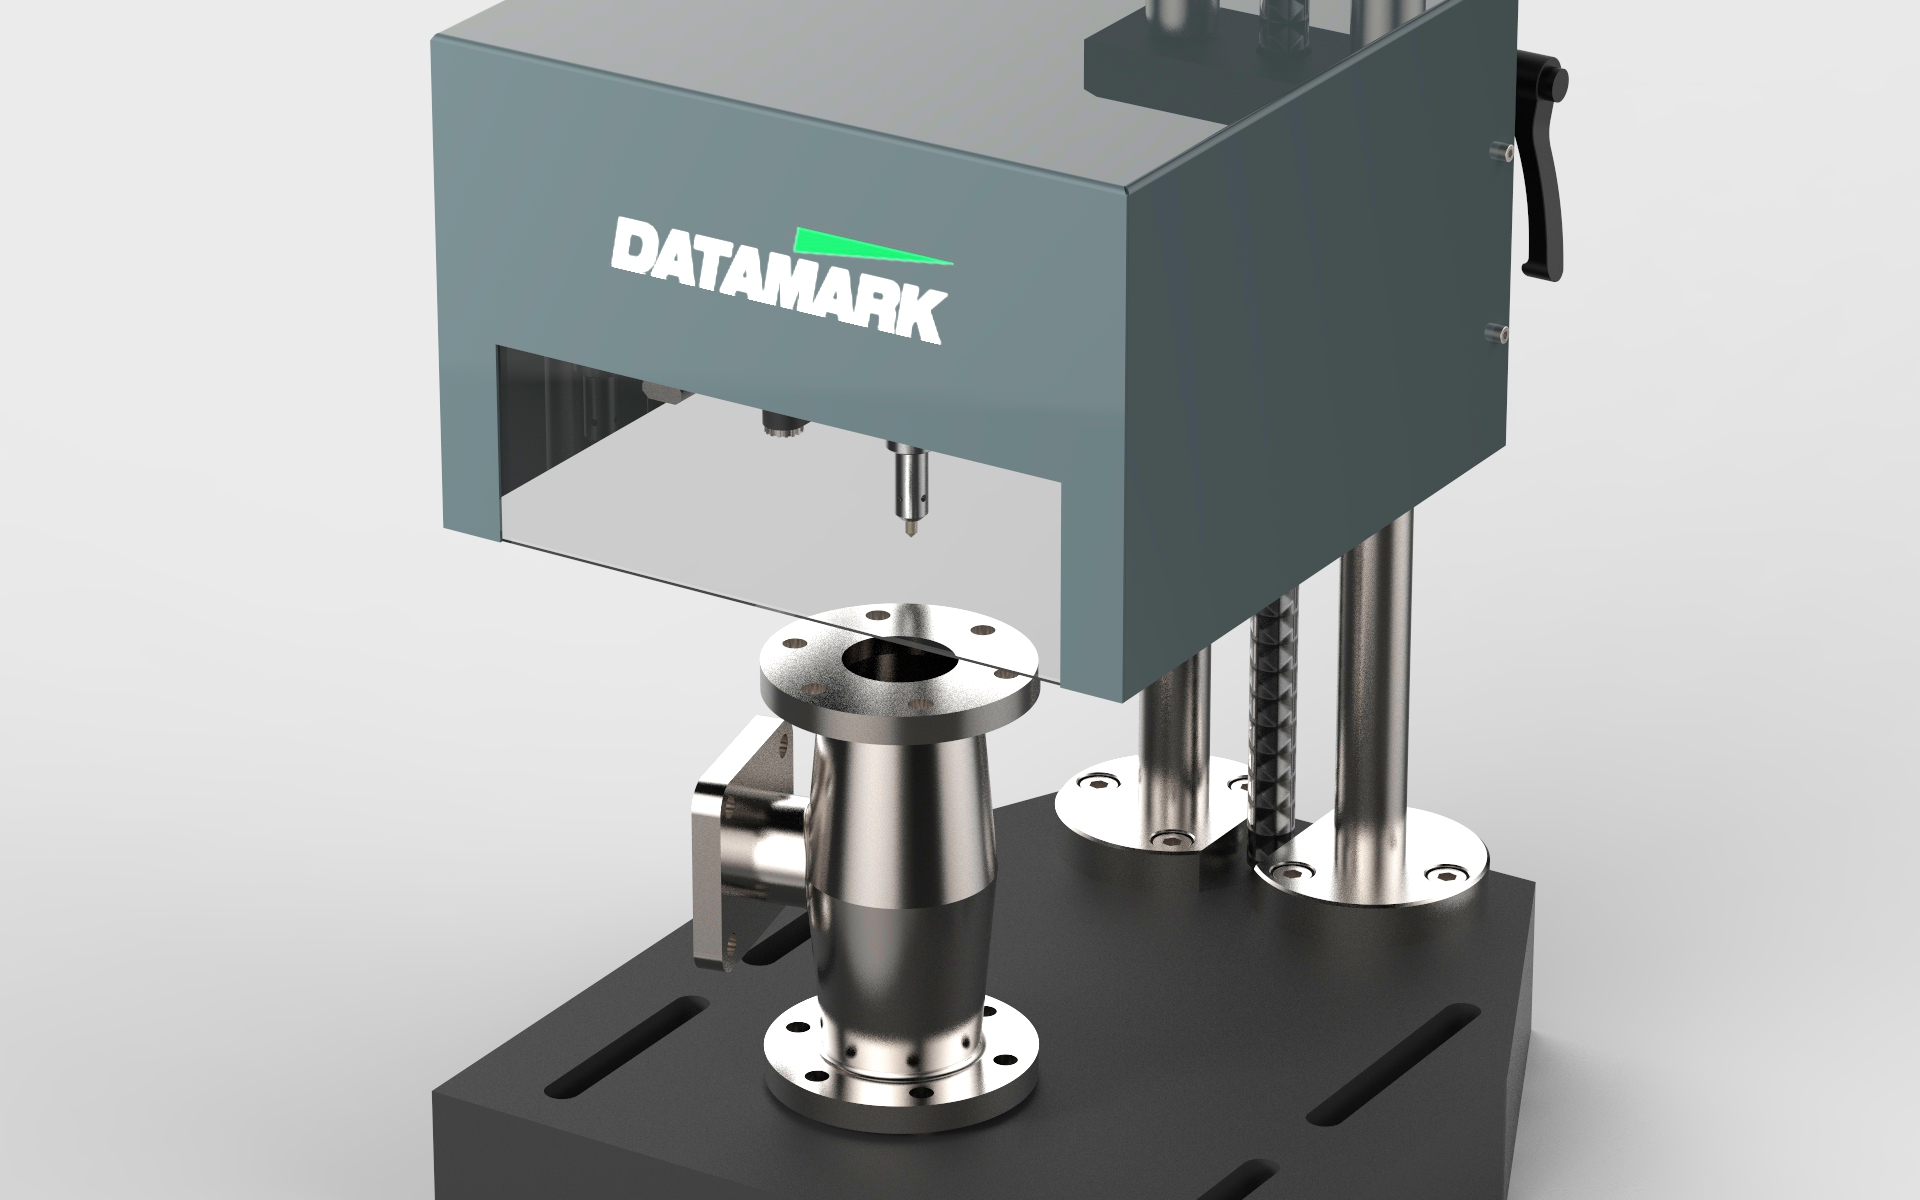 Table-top marking machine for permanent identification marking